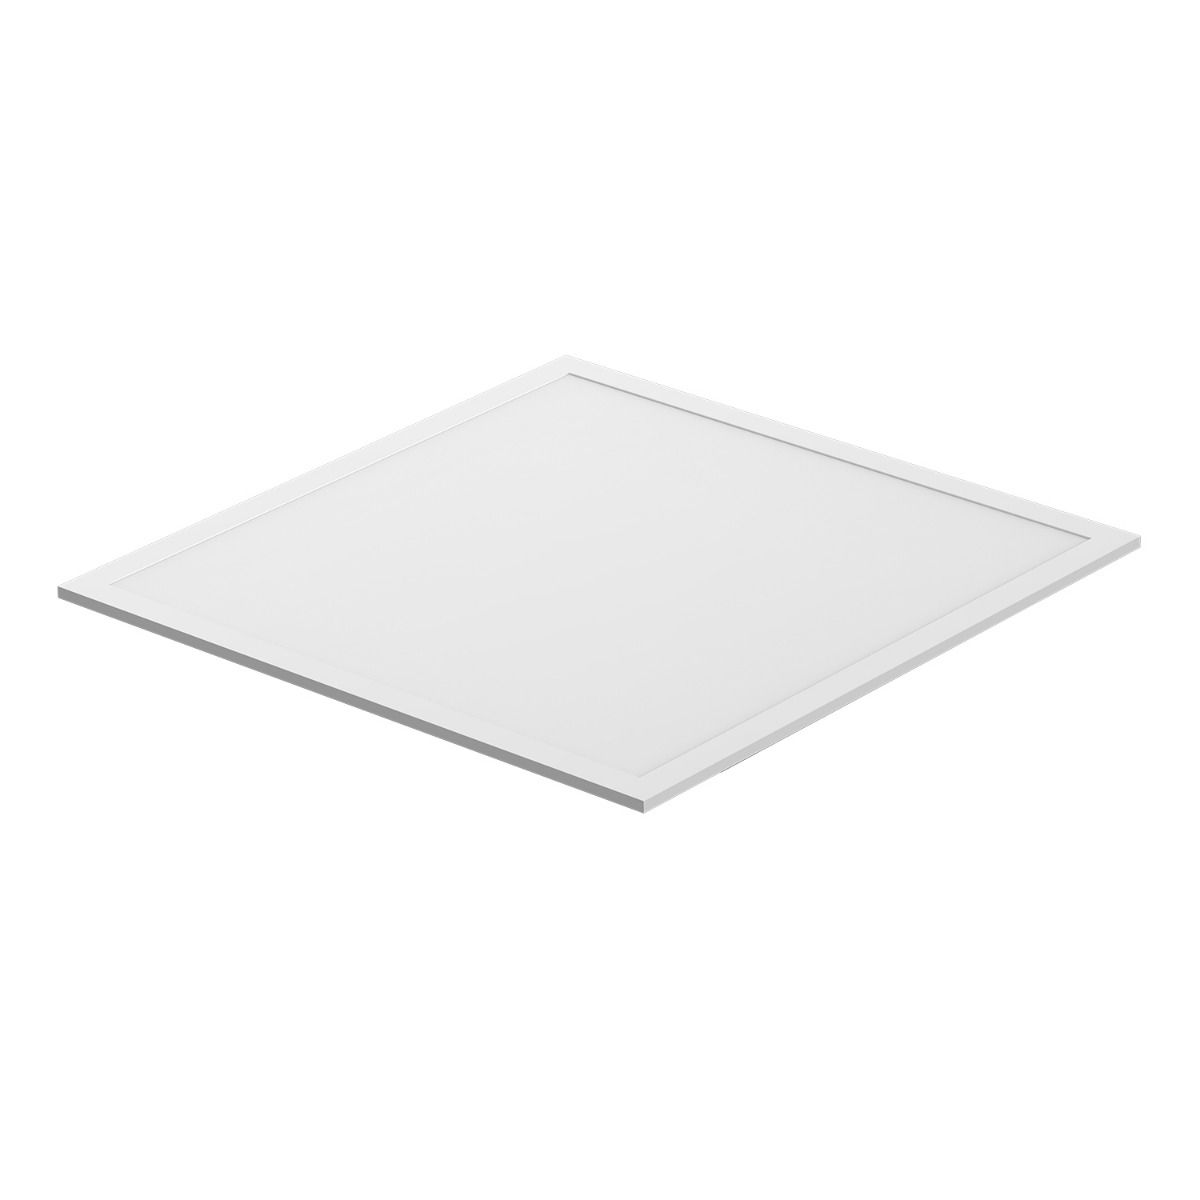 Noxion LED Panel Delta Pro Highlum V2.0 Xitanium DALI 40W 60x60cm 6500K 5480lm UGR <19 | Dali Dimmable - Replacer for 4x18W